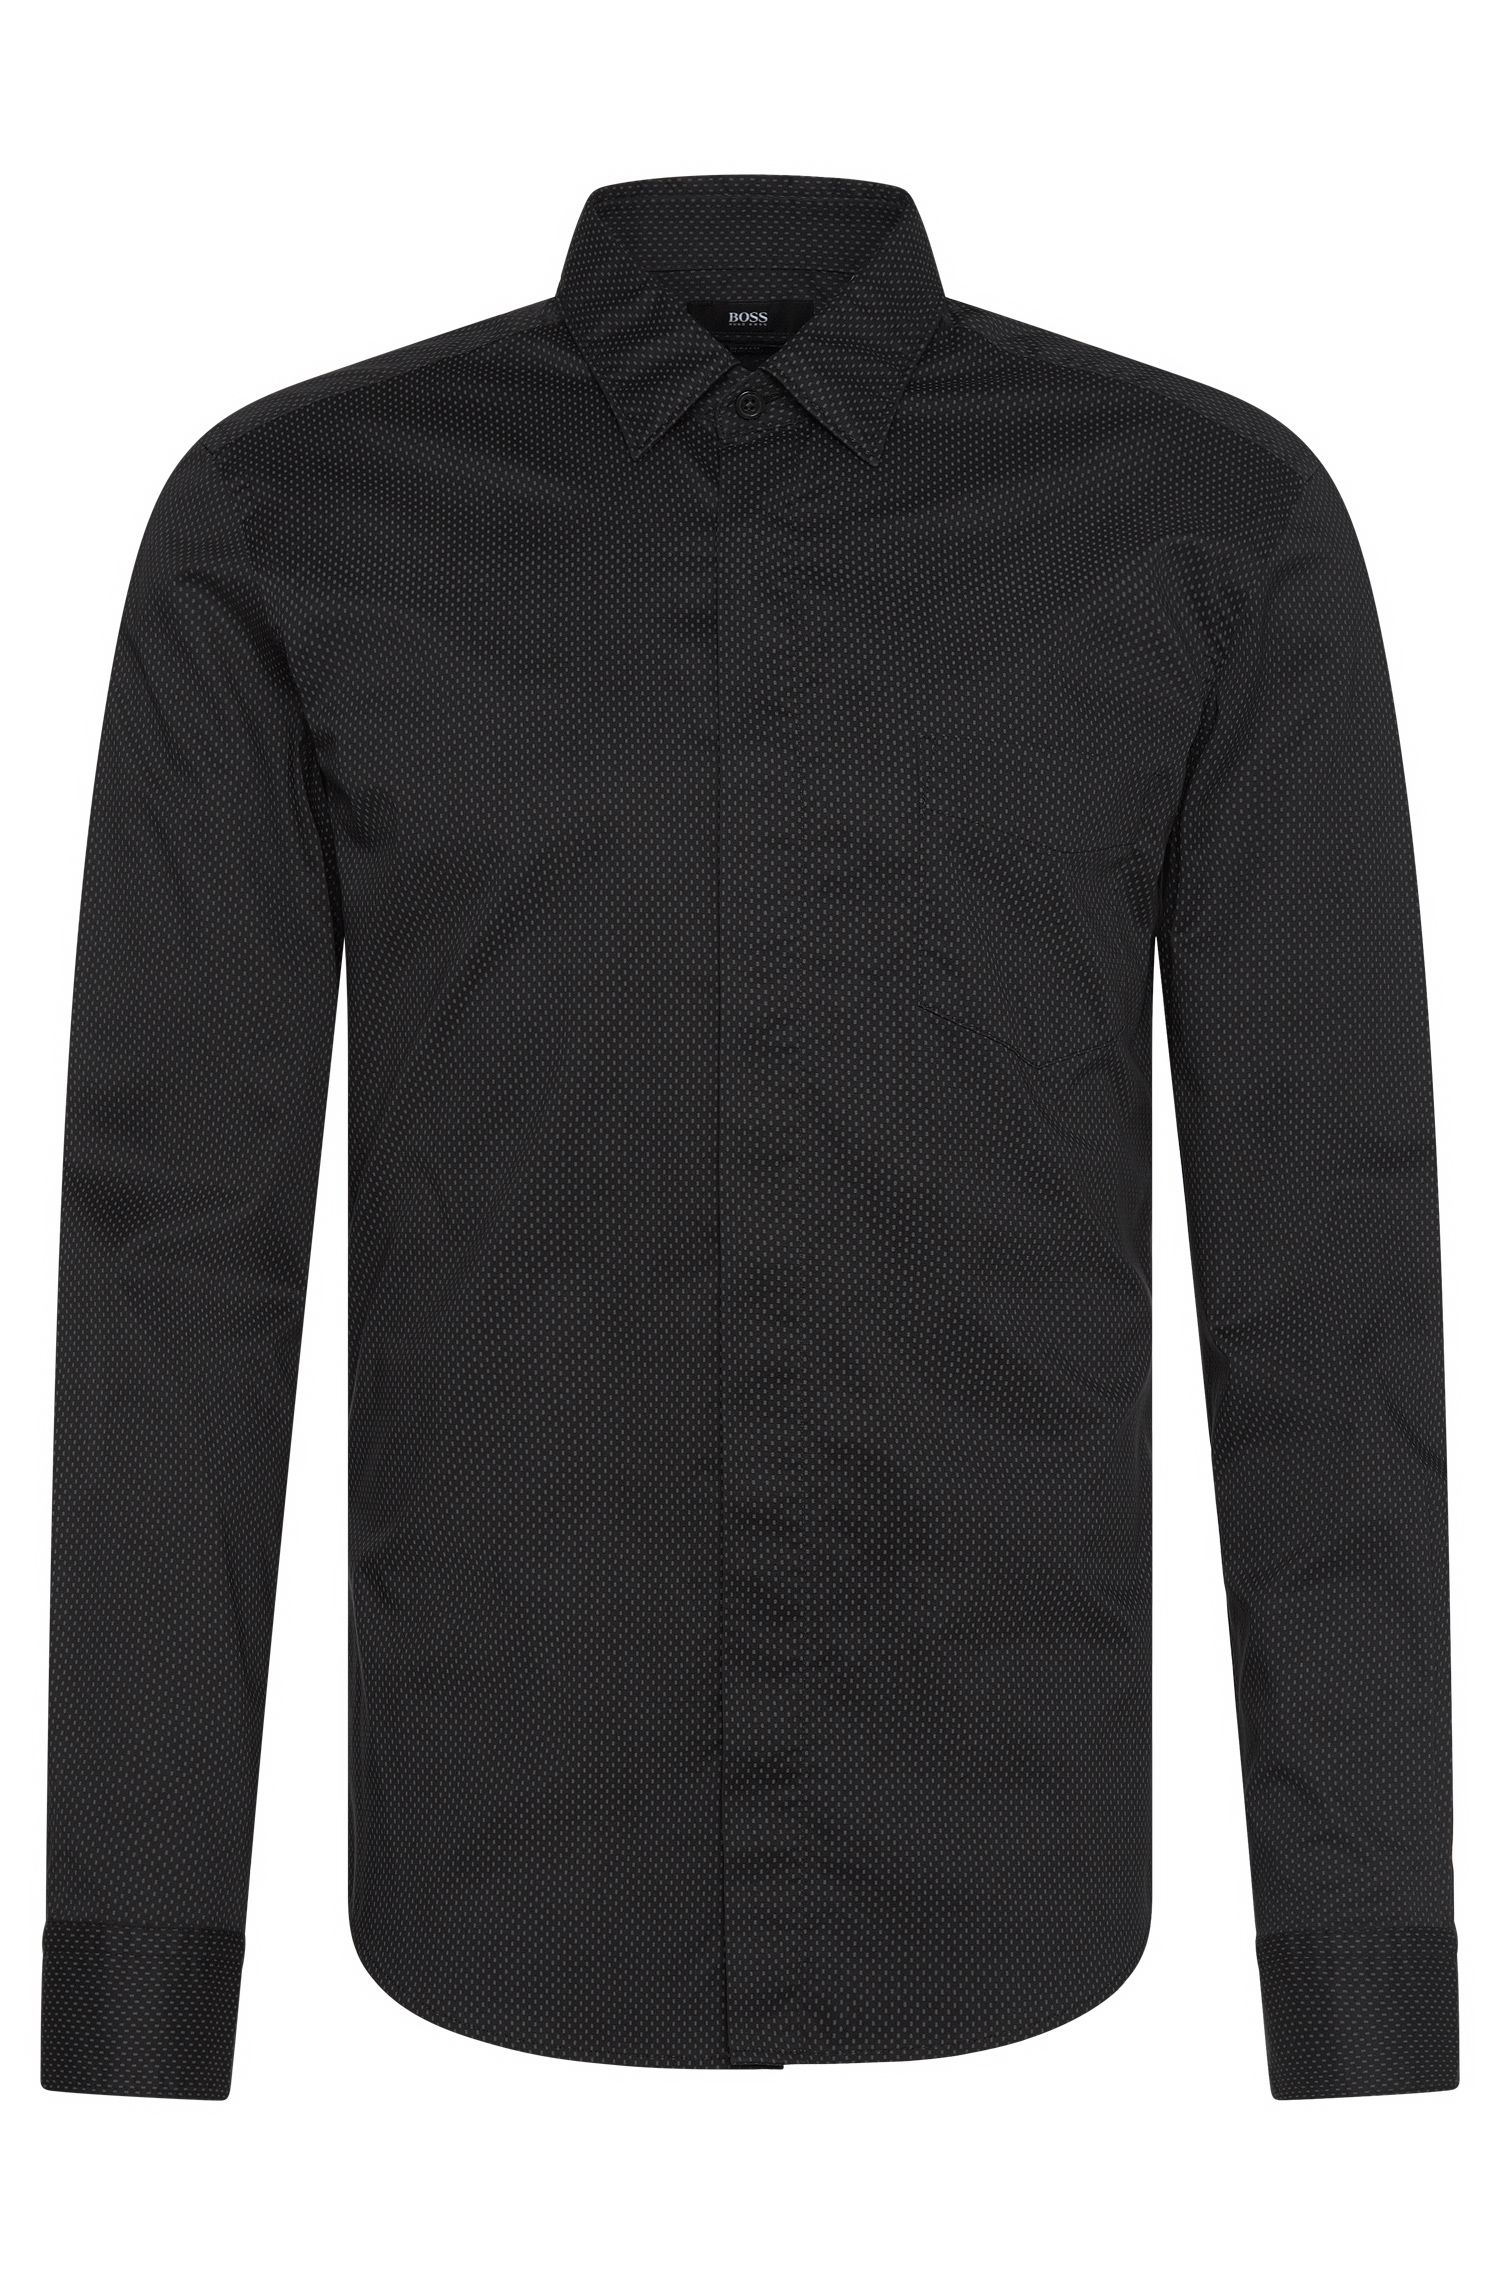 Chemise Slim Fit en coton extensible : « Reid_47HP » issue de la collection Mercedes-Benz